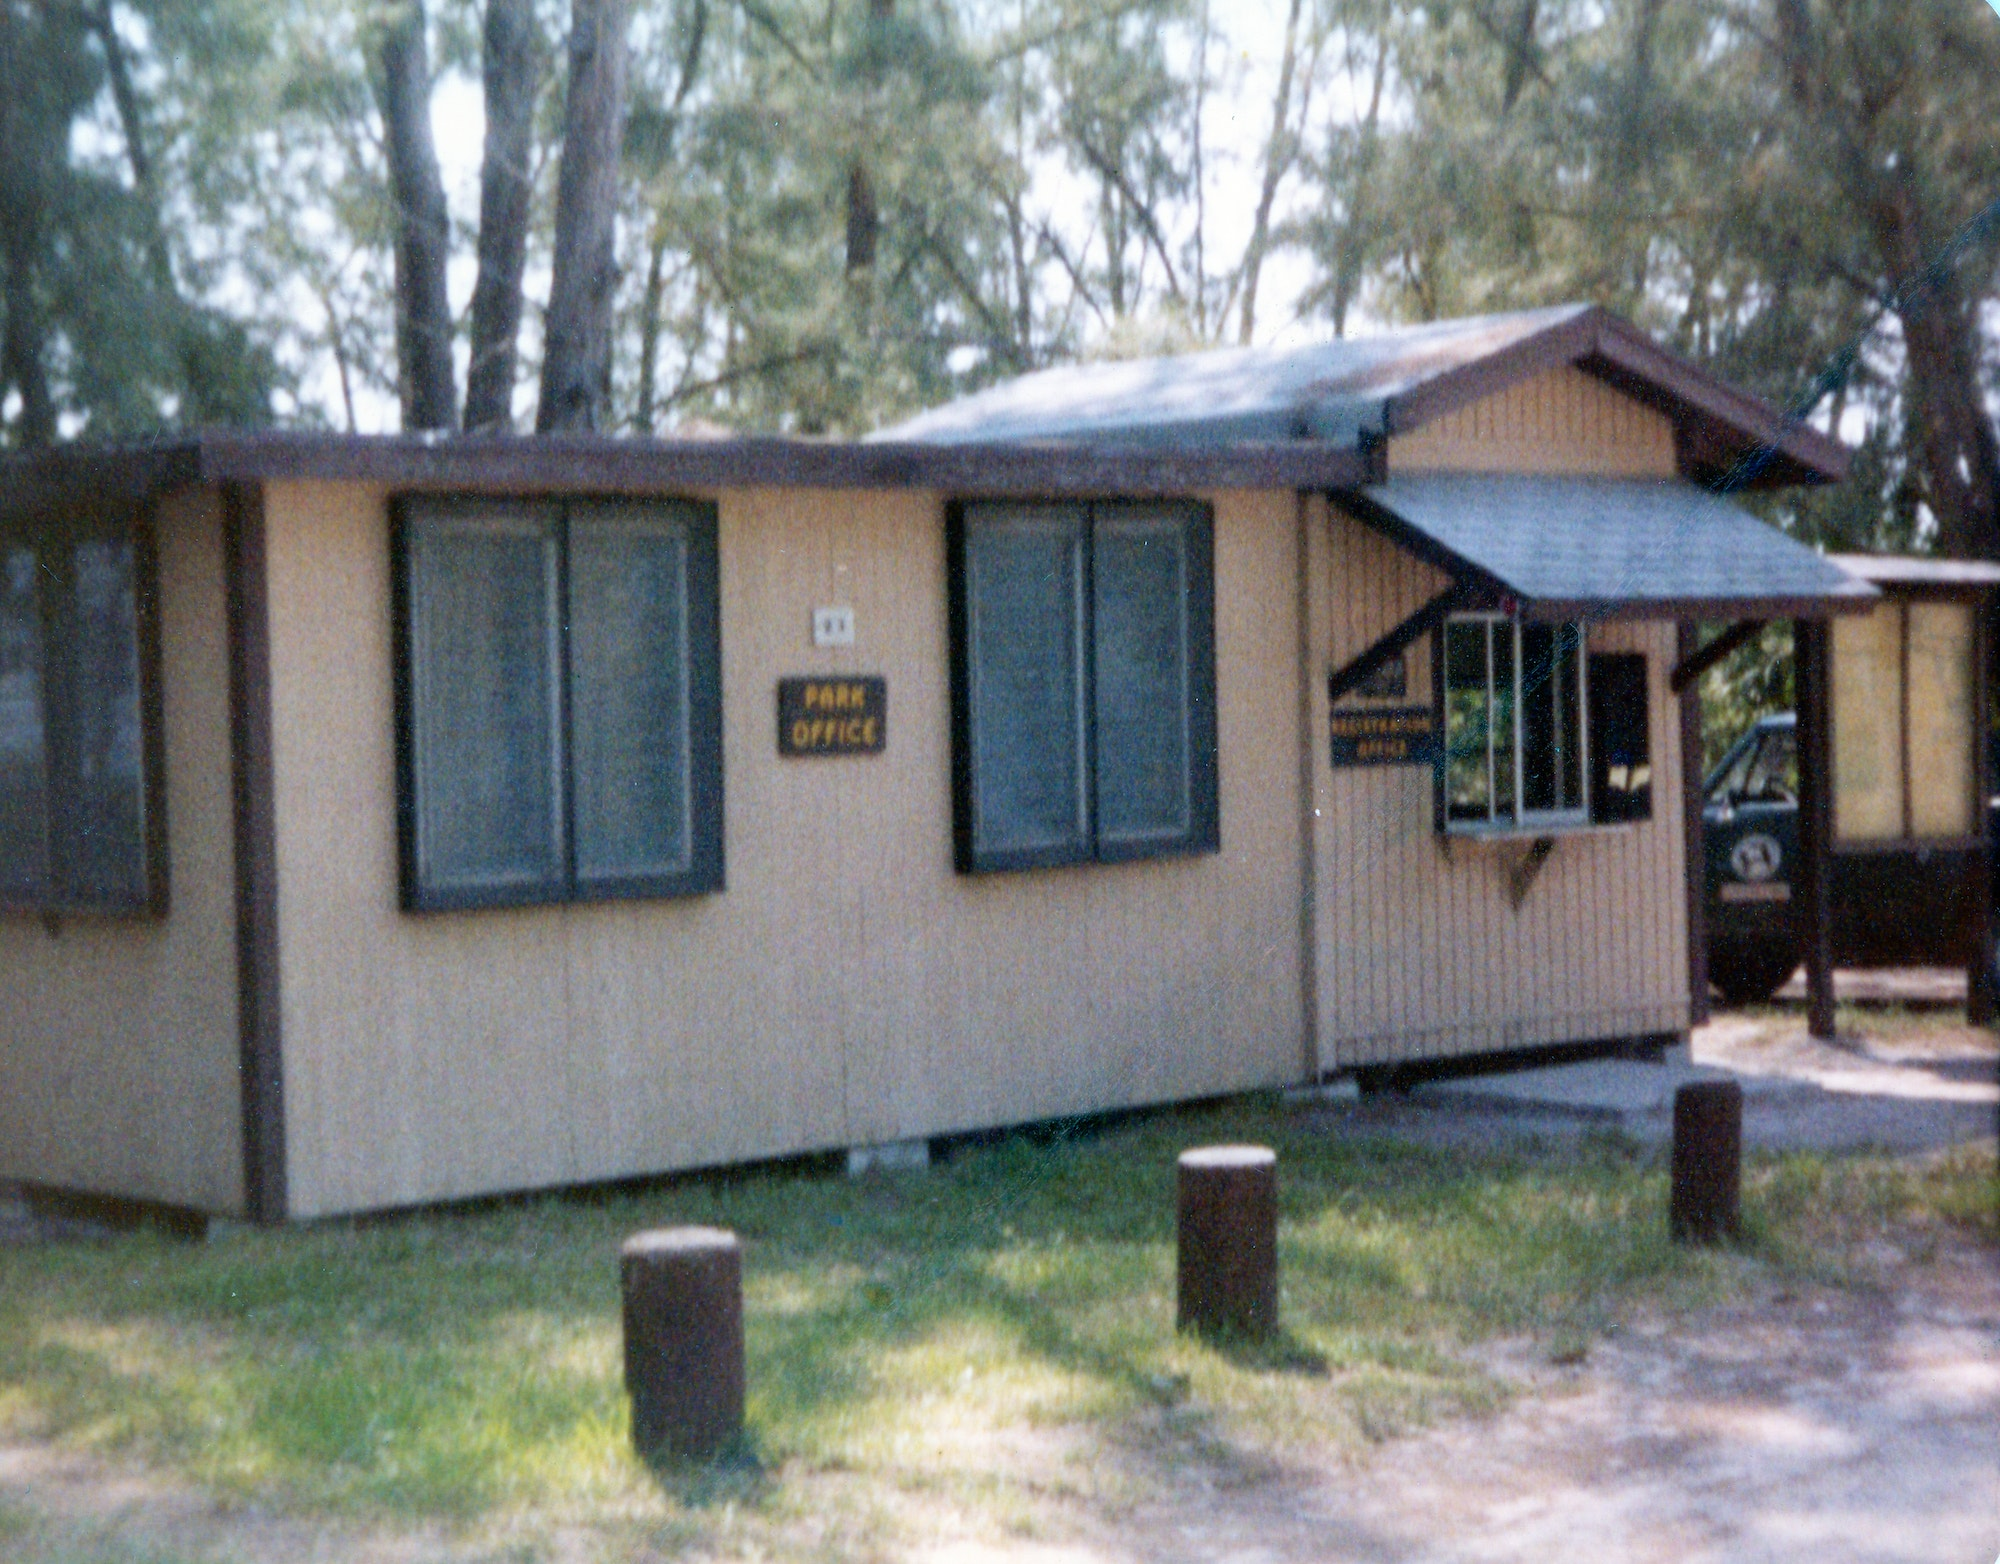 Ranger offices at Sebastian Inlet State Park from 1970s